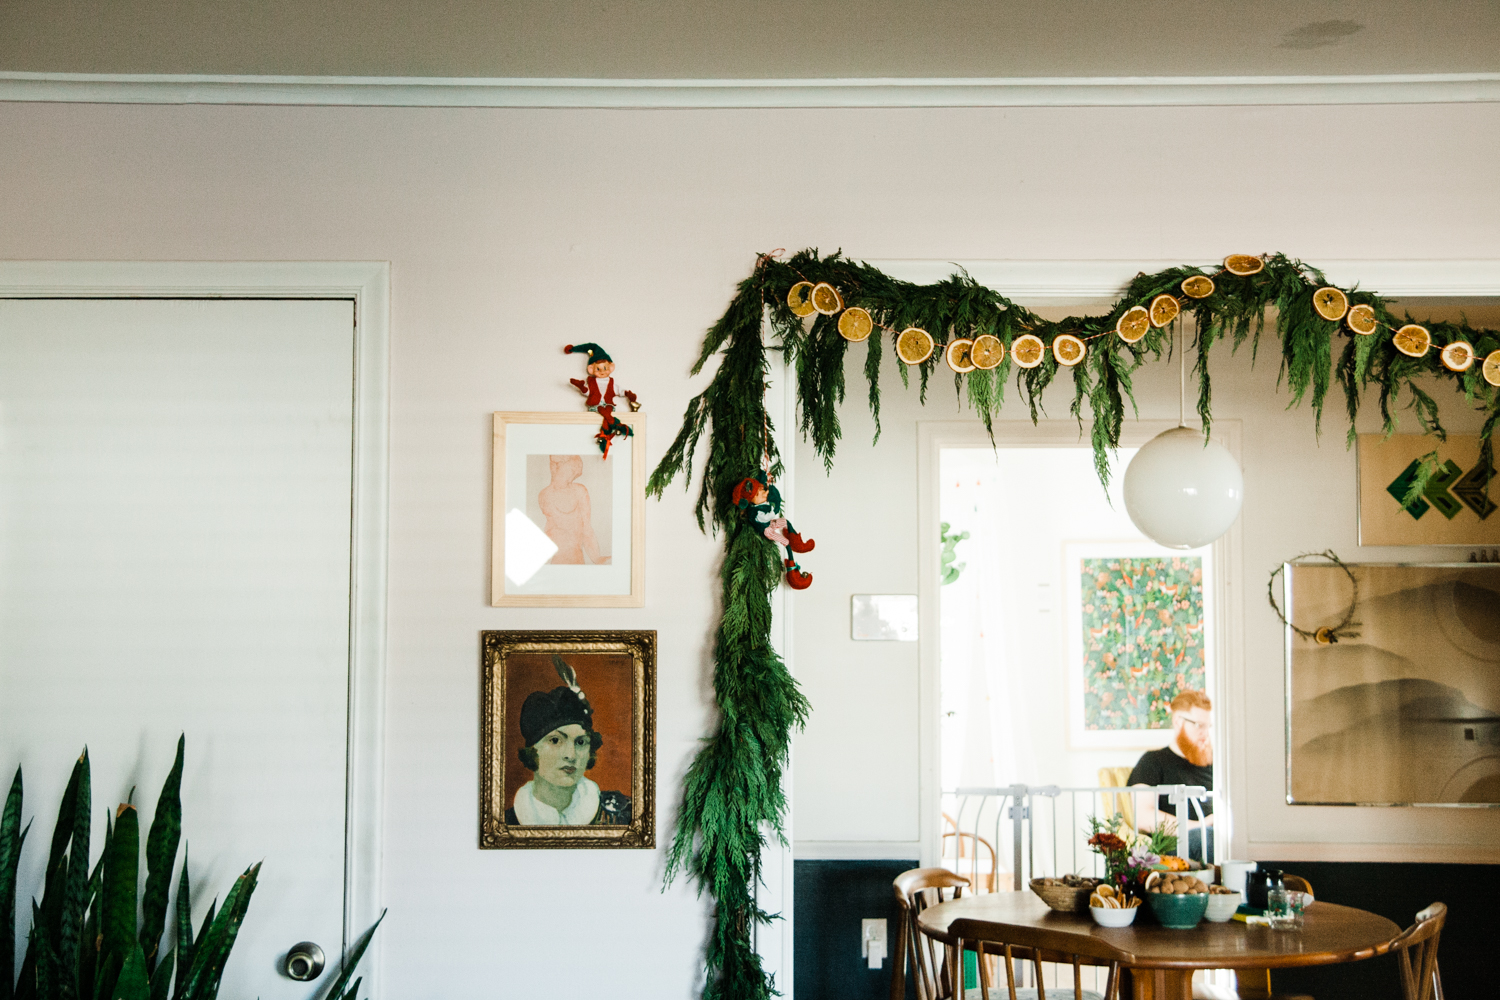 daly holiday home tour-11.jpg